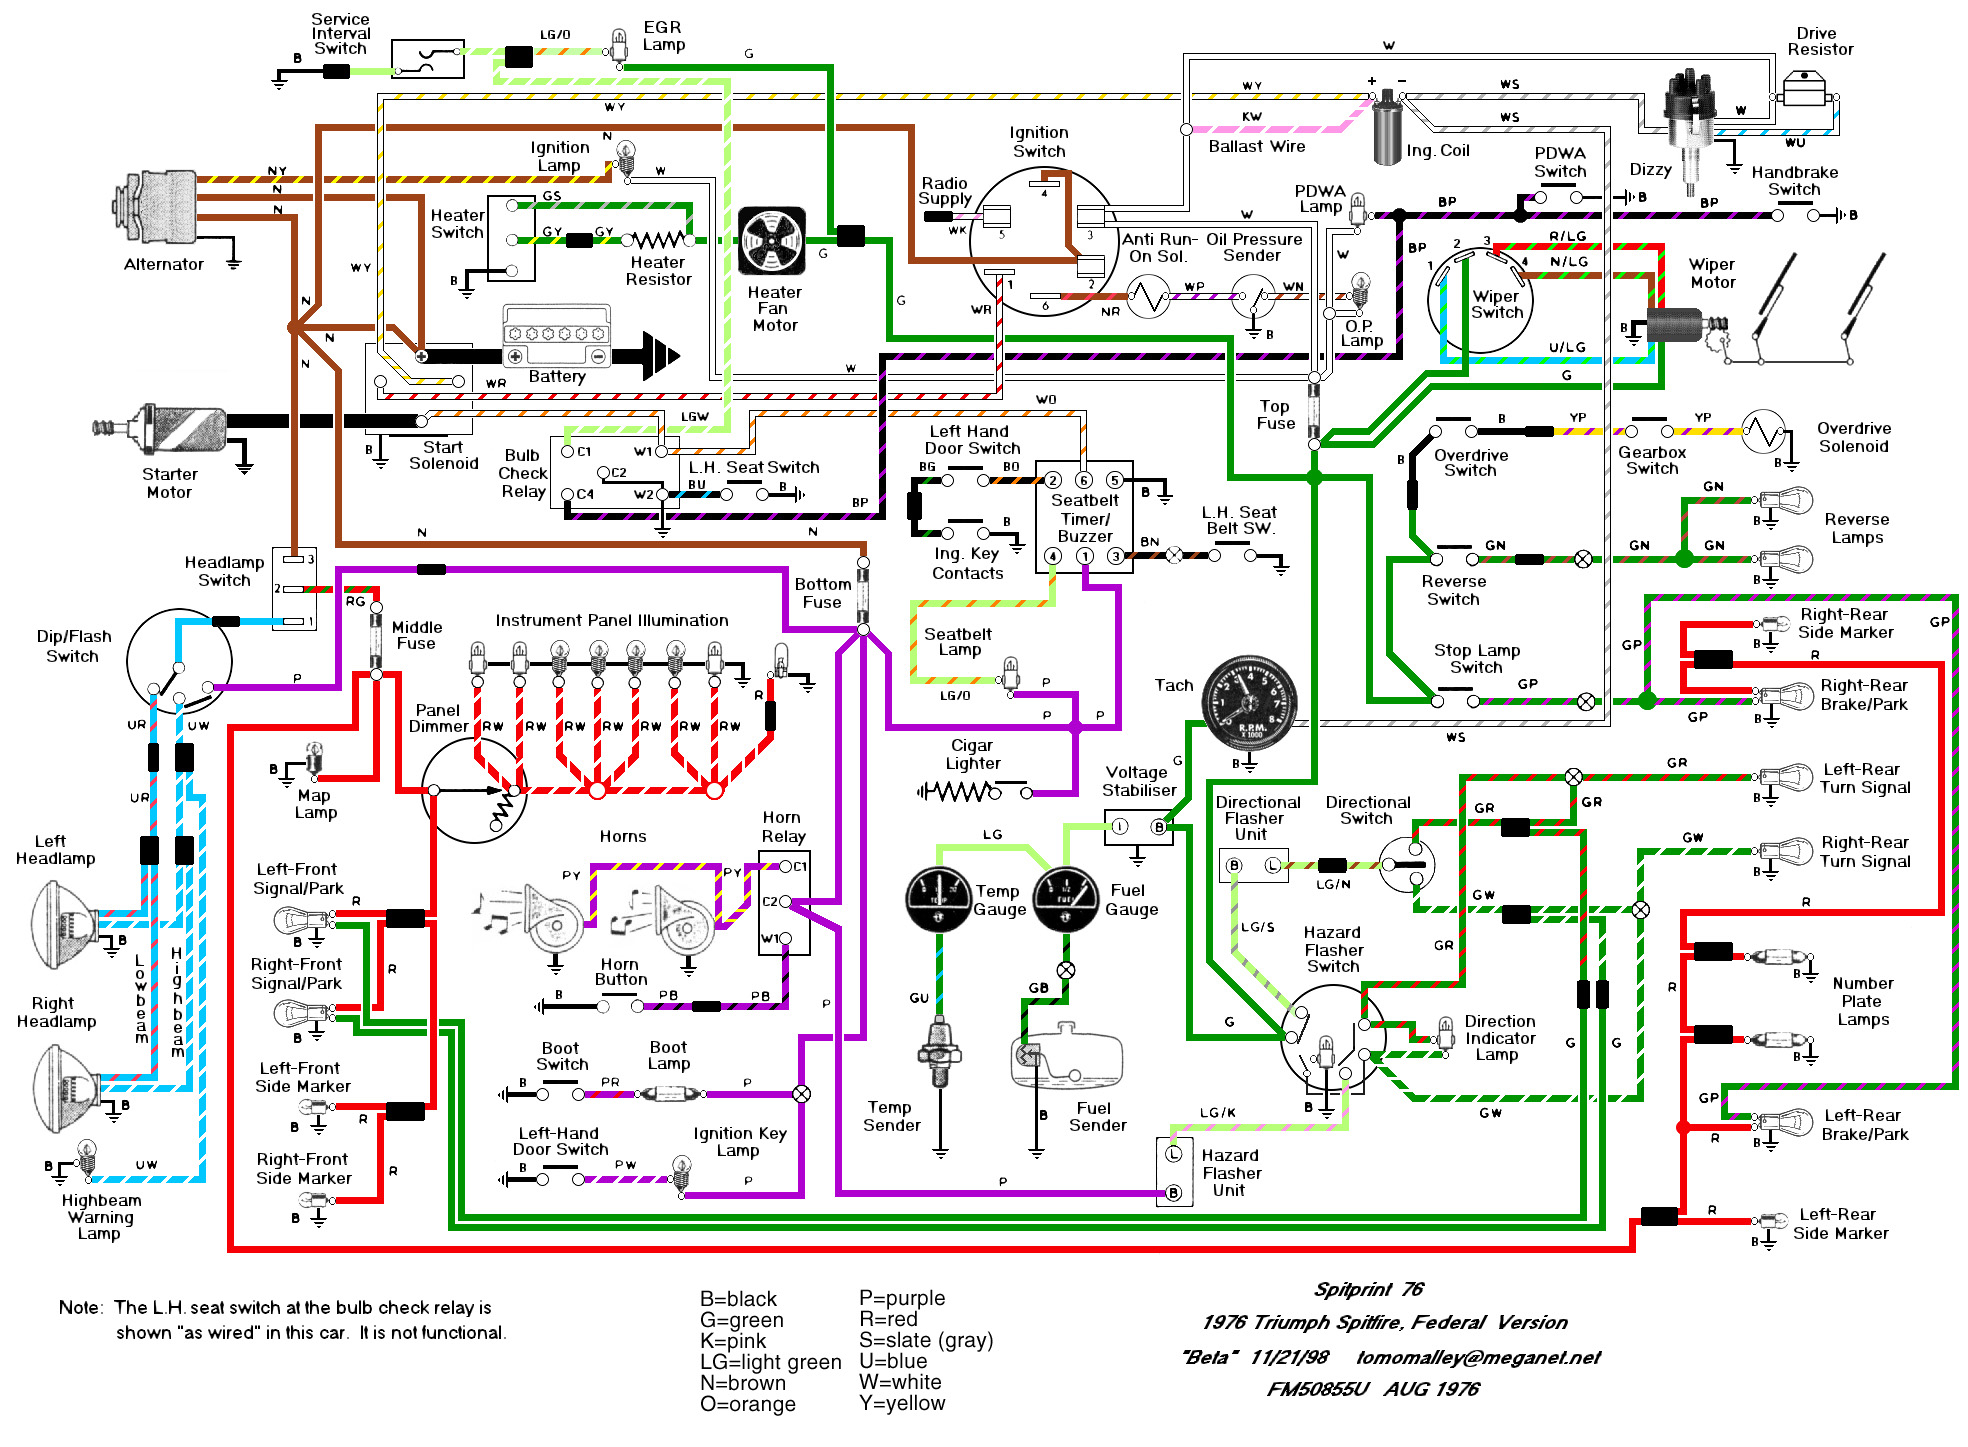 Strobe Light Wiring Diagram furthermore Wiring Diagram For Fire Alarm System as well Sewer Pump Wiring also Door Holder Fire Alarm Wiring Diagram in addition Sewage Pump Wiring Diagram. on simplex wiring diagrams